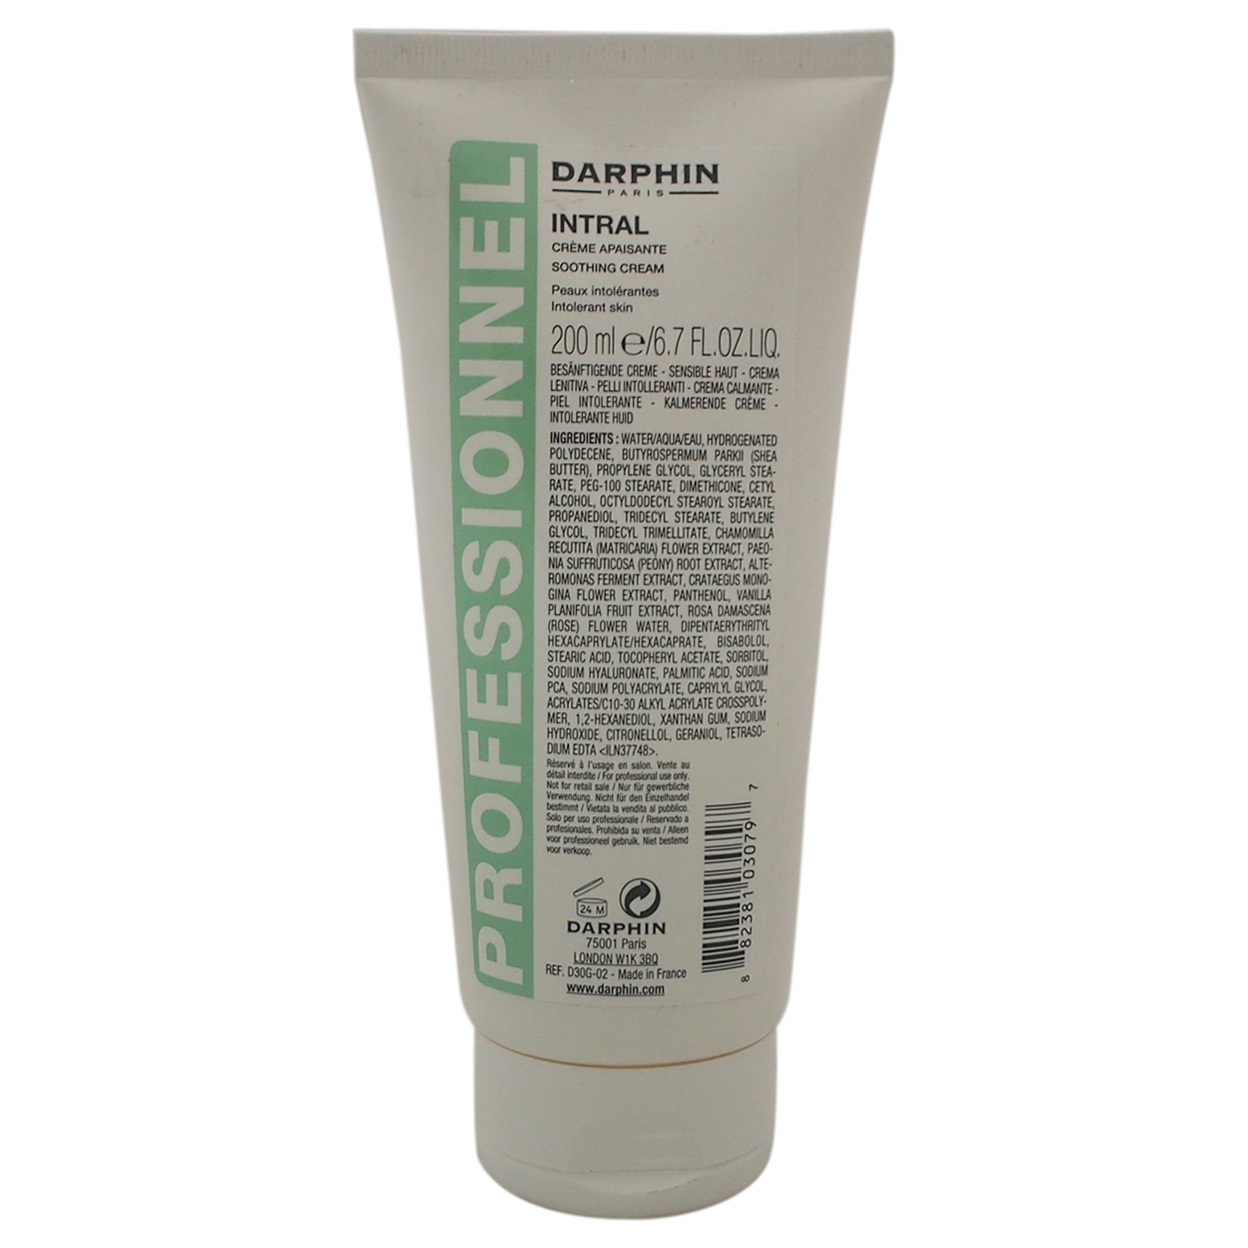 Intral Soothing Cream By Darphin For Women 6.7 Oz Cream